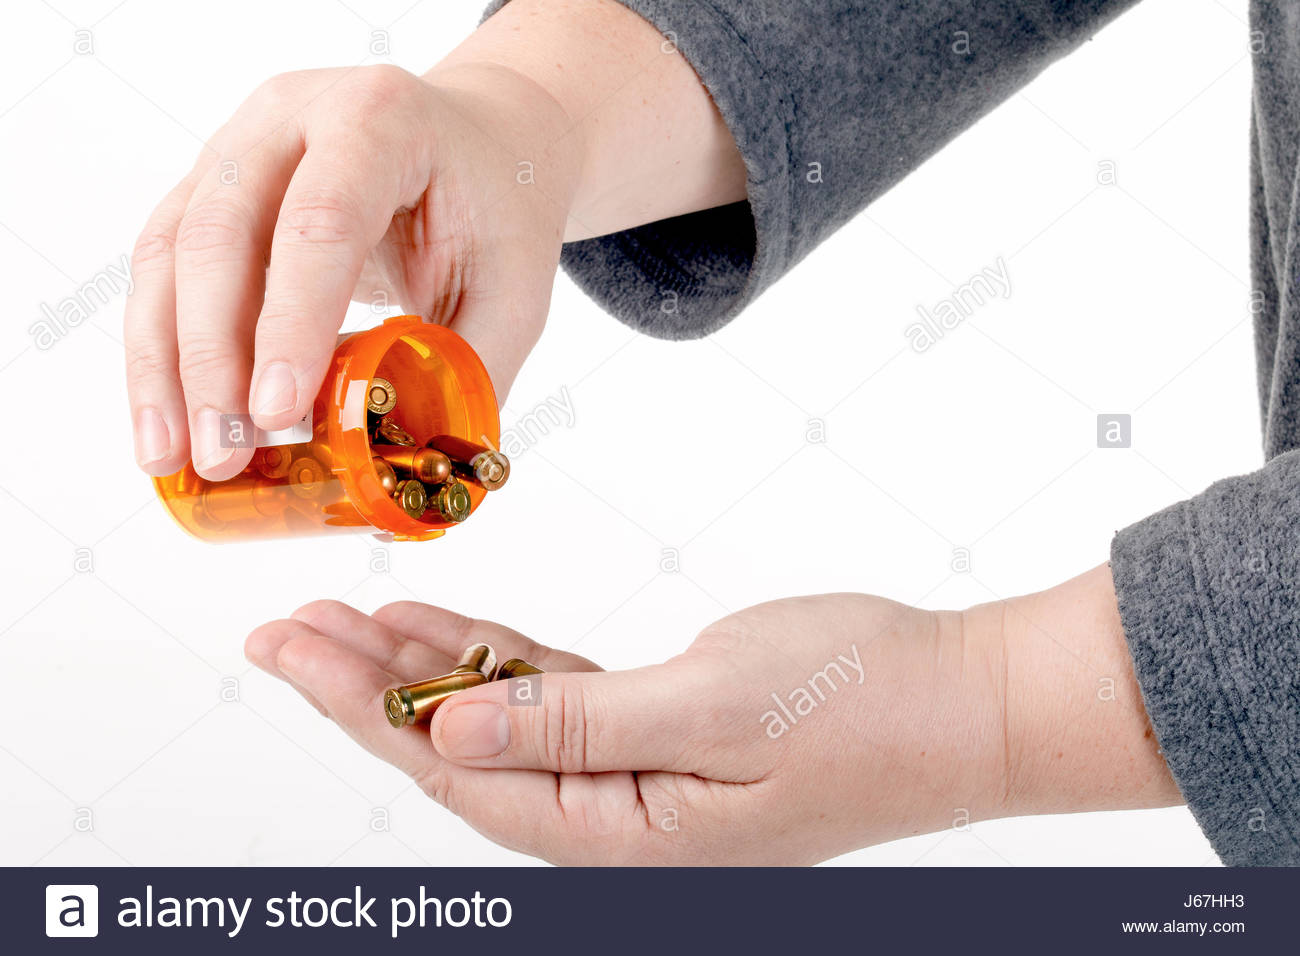 Closeup of a woman's hands holding a prescription pill bottle full of bullets tilting the bottle as if ready - Stock Image